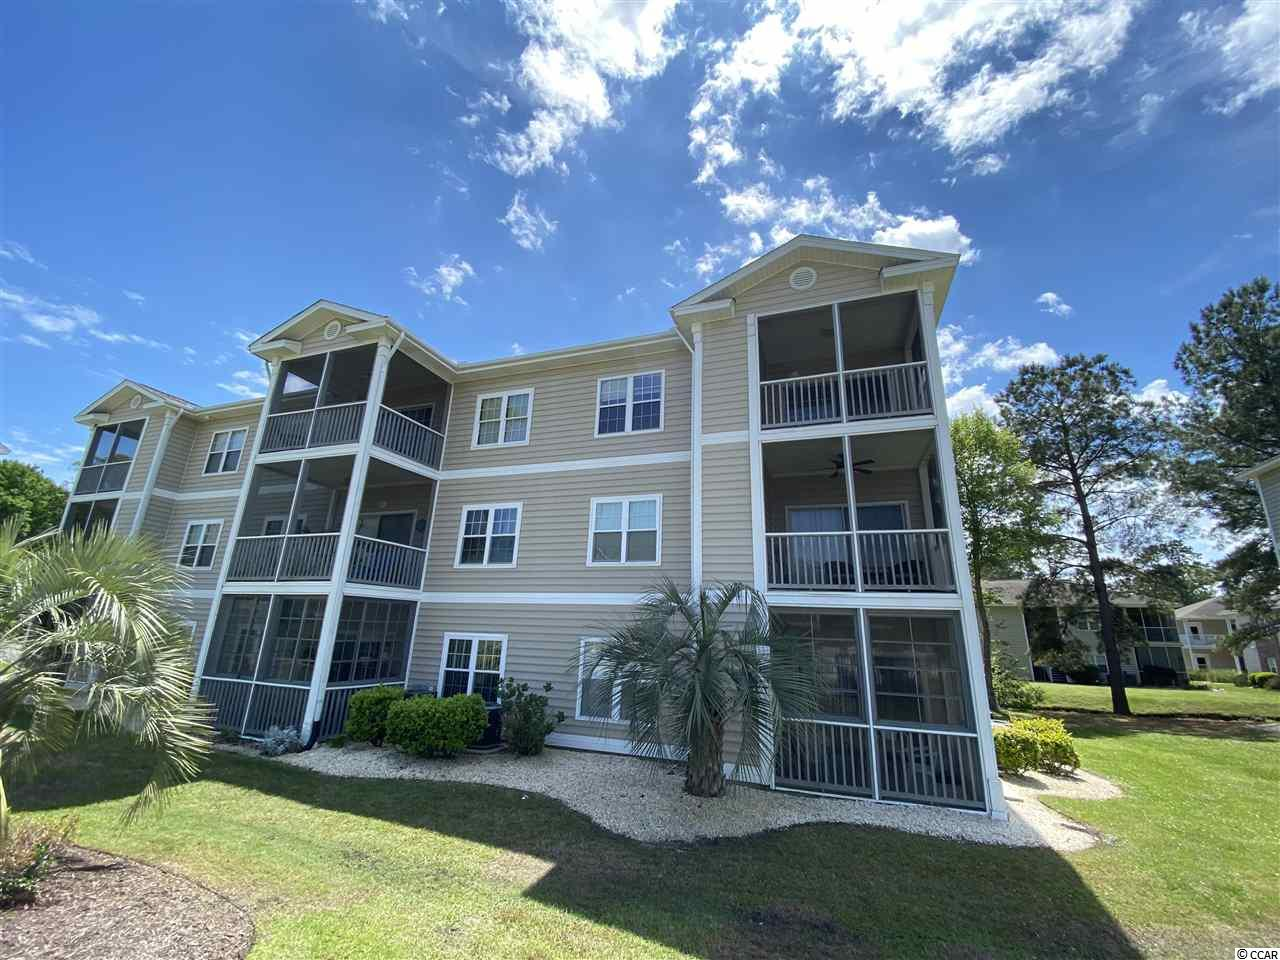 HANDYMAN Special!! This lovely 2 bedroom top floor condo has vaulted ceilings and is on the end of the building overlooking the community swimming pool. There is plenty of natural light and great views from the balcony. The home needs some updating and upgrading to be on par with the higher priced comps in the community. Price to sell fast!! Home sold AS IS.